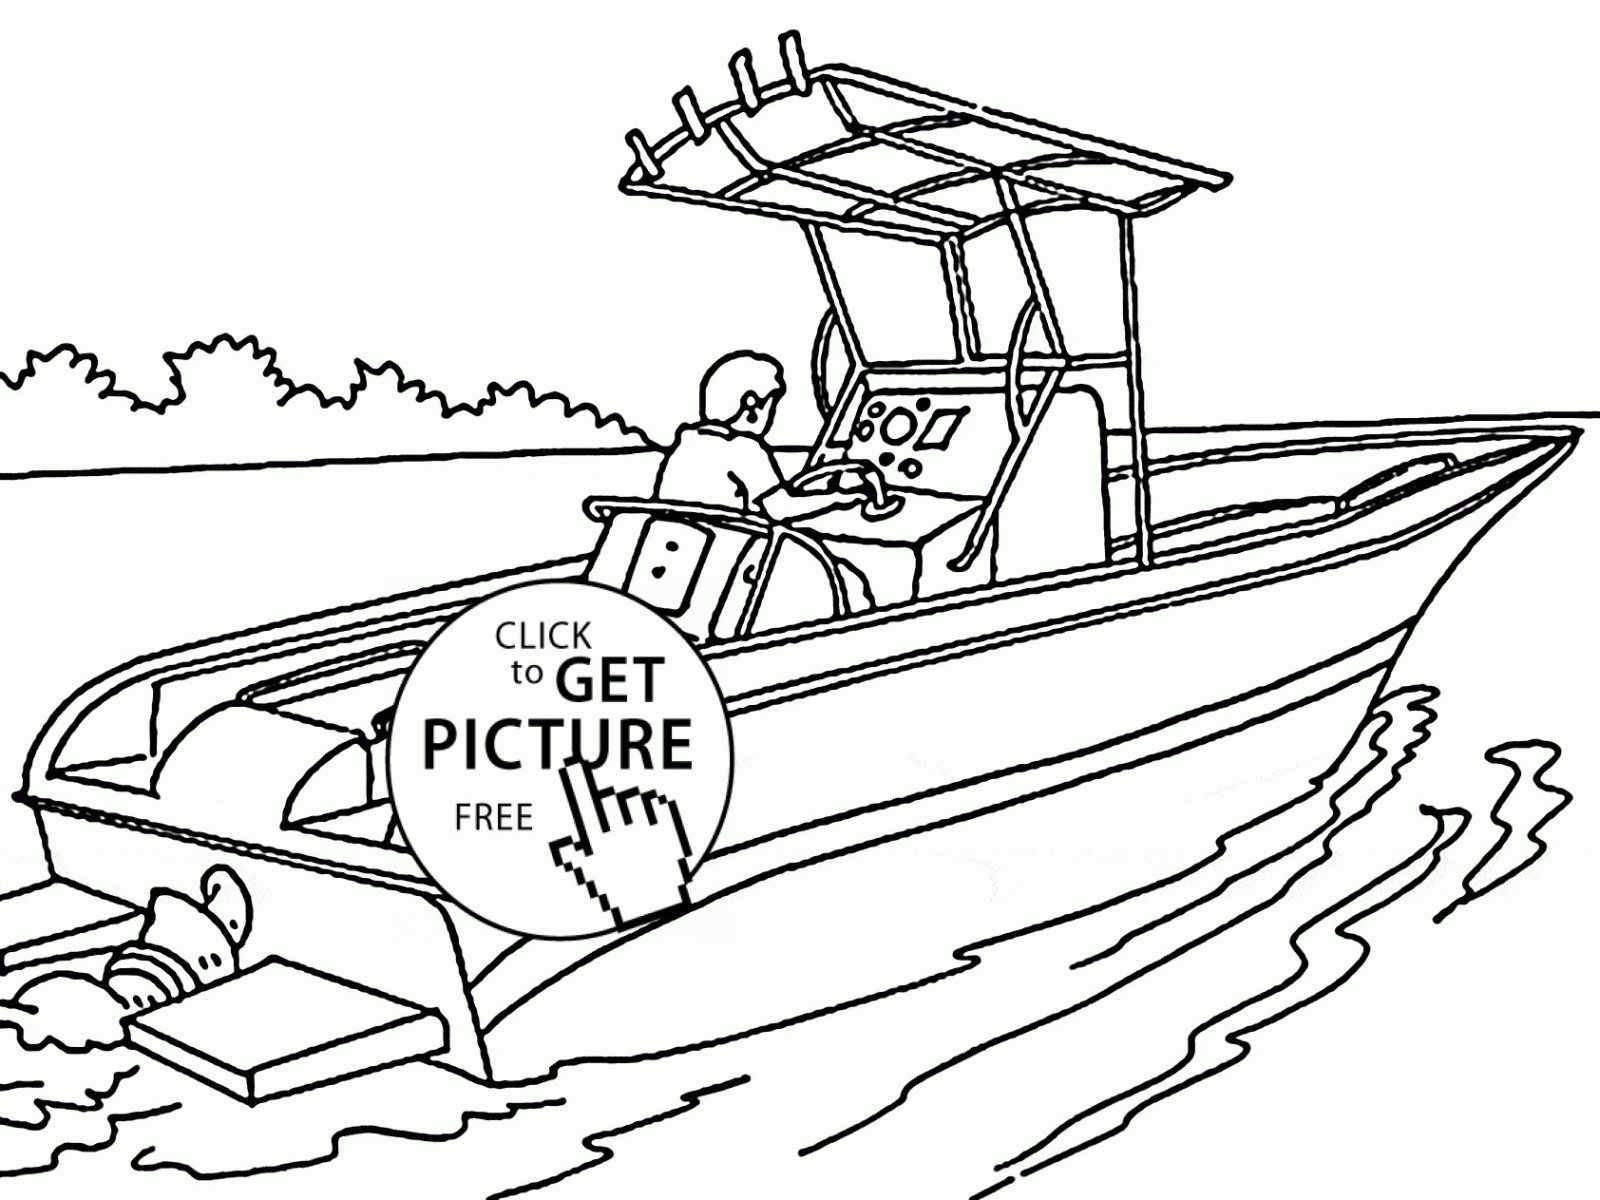 1600x1200 Fishing Boat Coloring Pages Free Printable For Kids Best Page